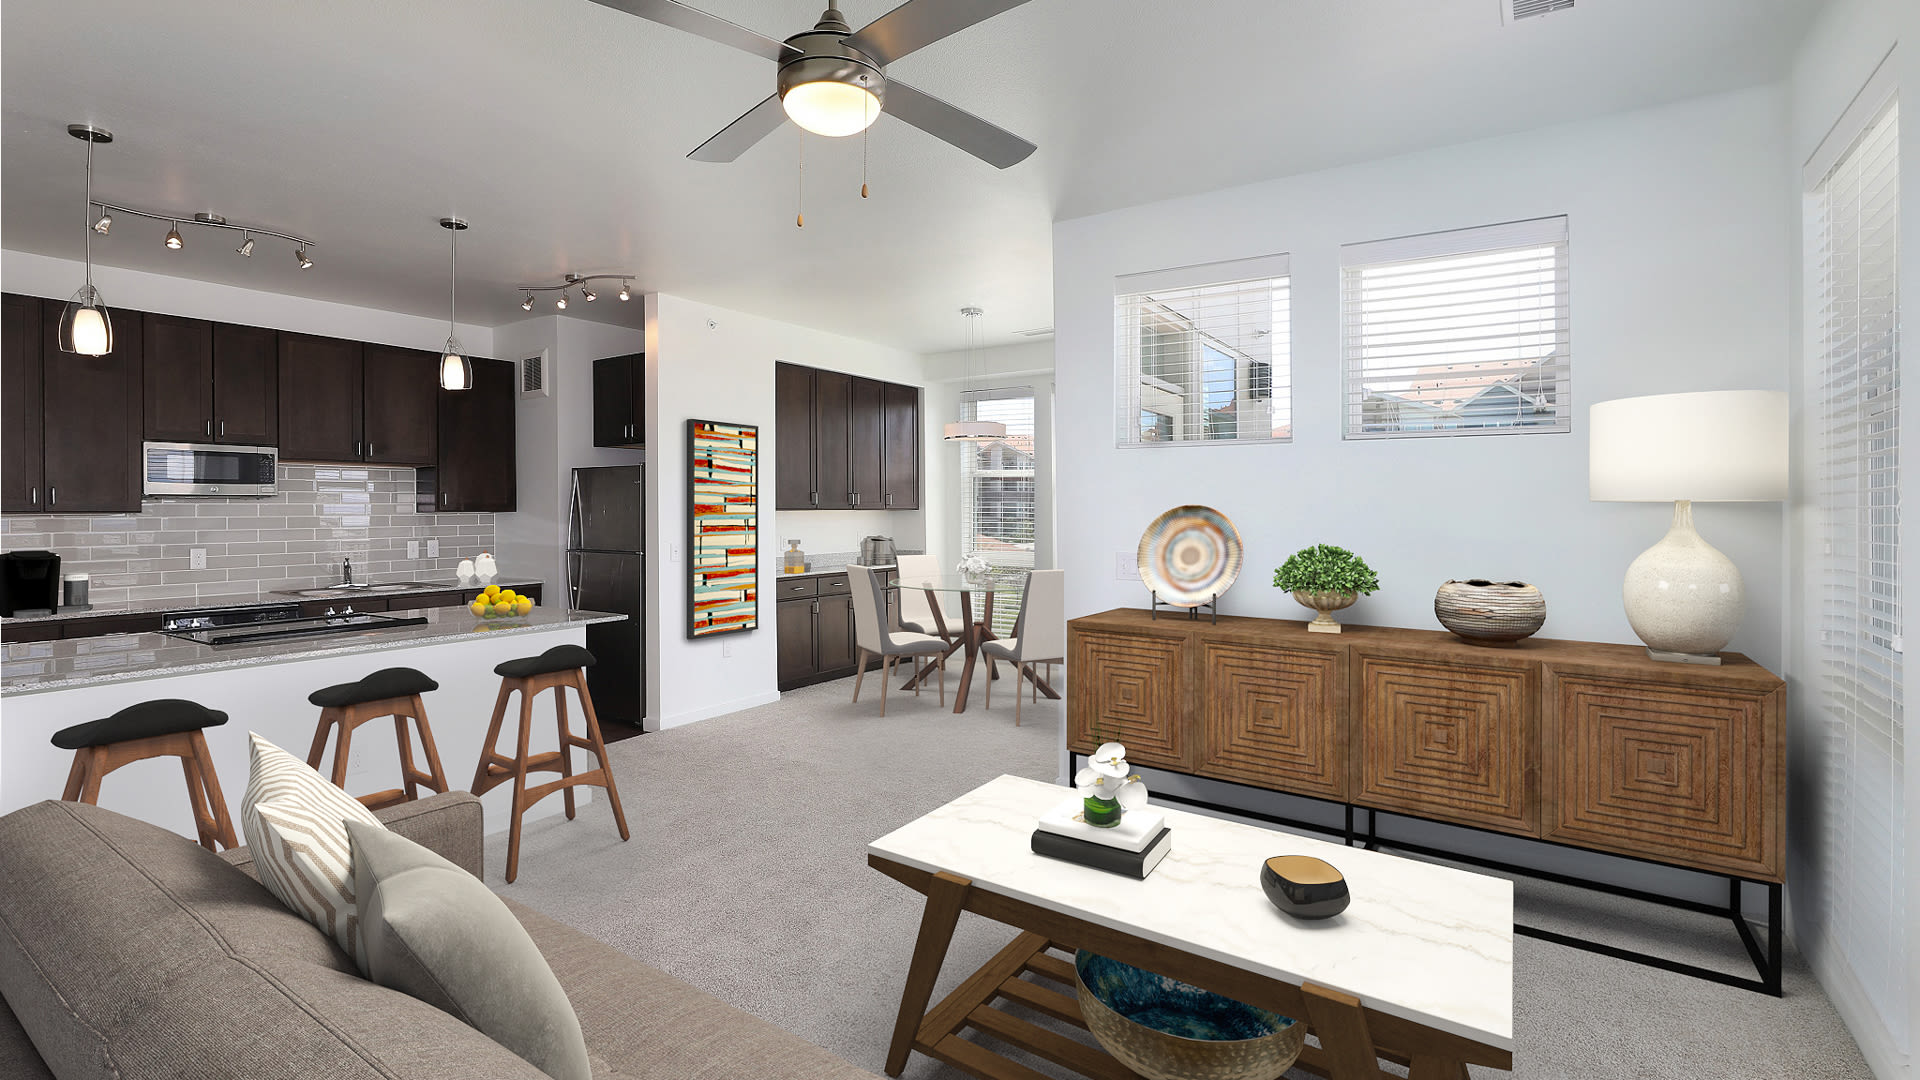 The Brodie Apartments - Kitchen and Carpeted Living Room